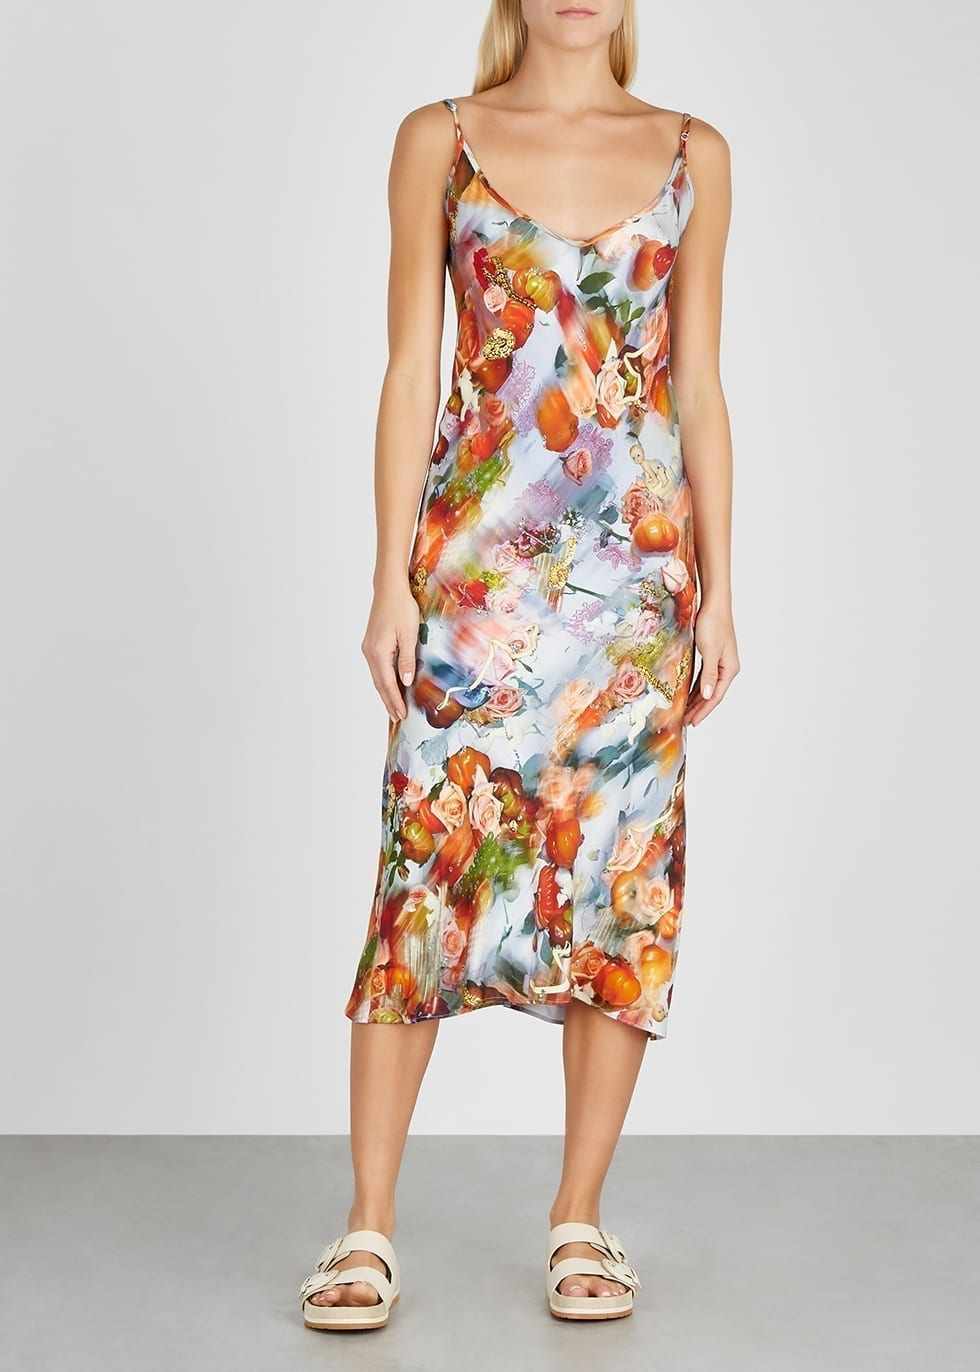 COLLINA STRADA X Charlie Engman Barbarella Midi Dress